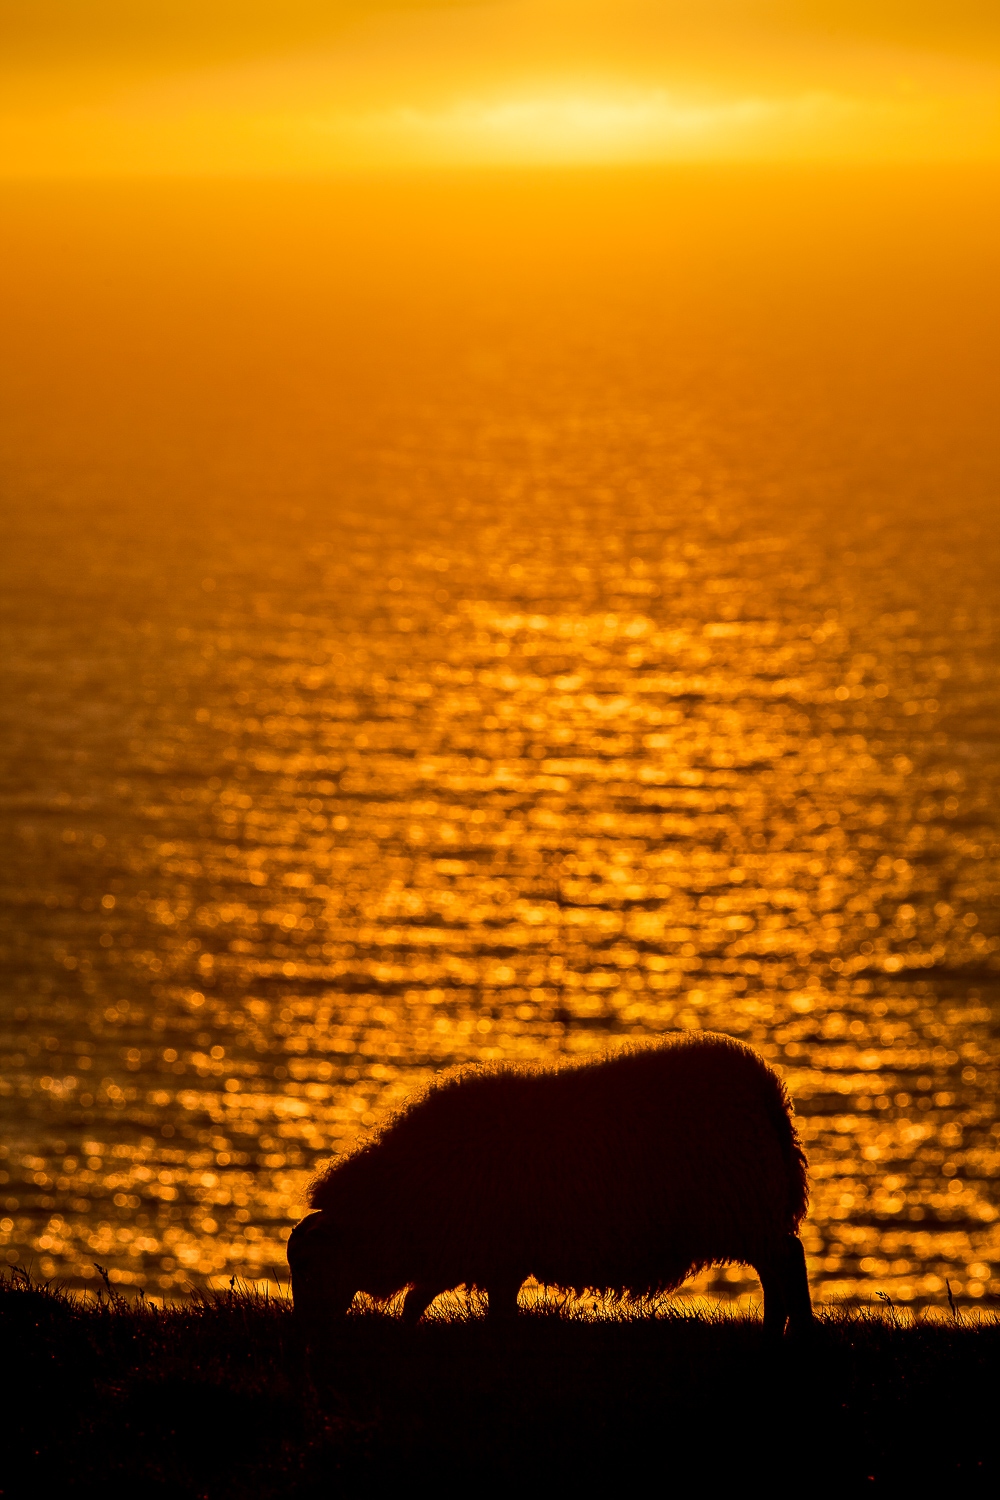 A  sheep calmly grazes  as a  magnificent sunset  sinks below the horizon on the  Látrabjarg Cliffs  in the western most part of  Iceland .